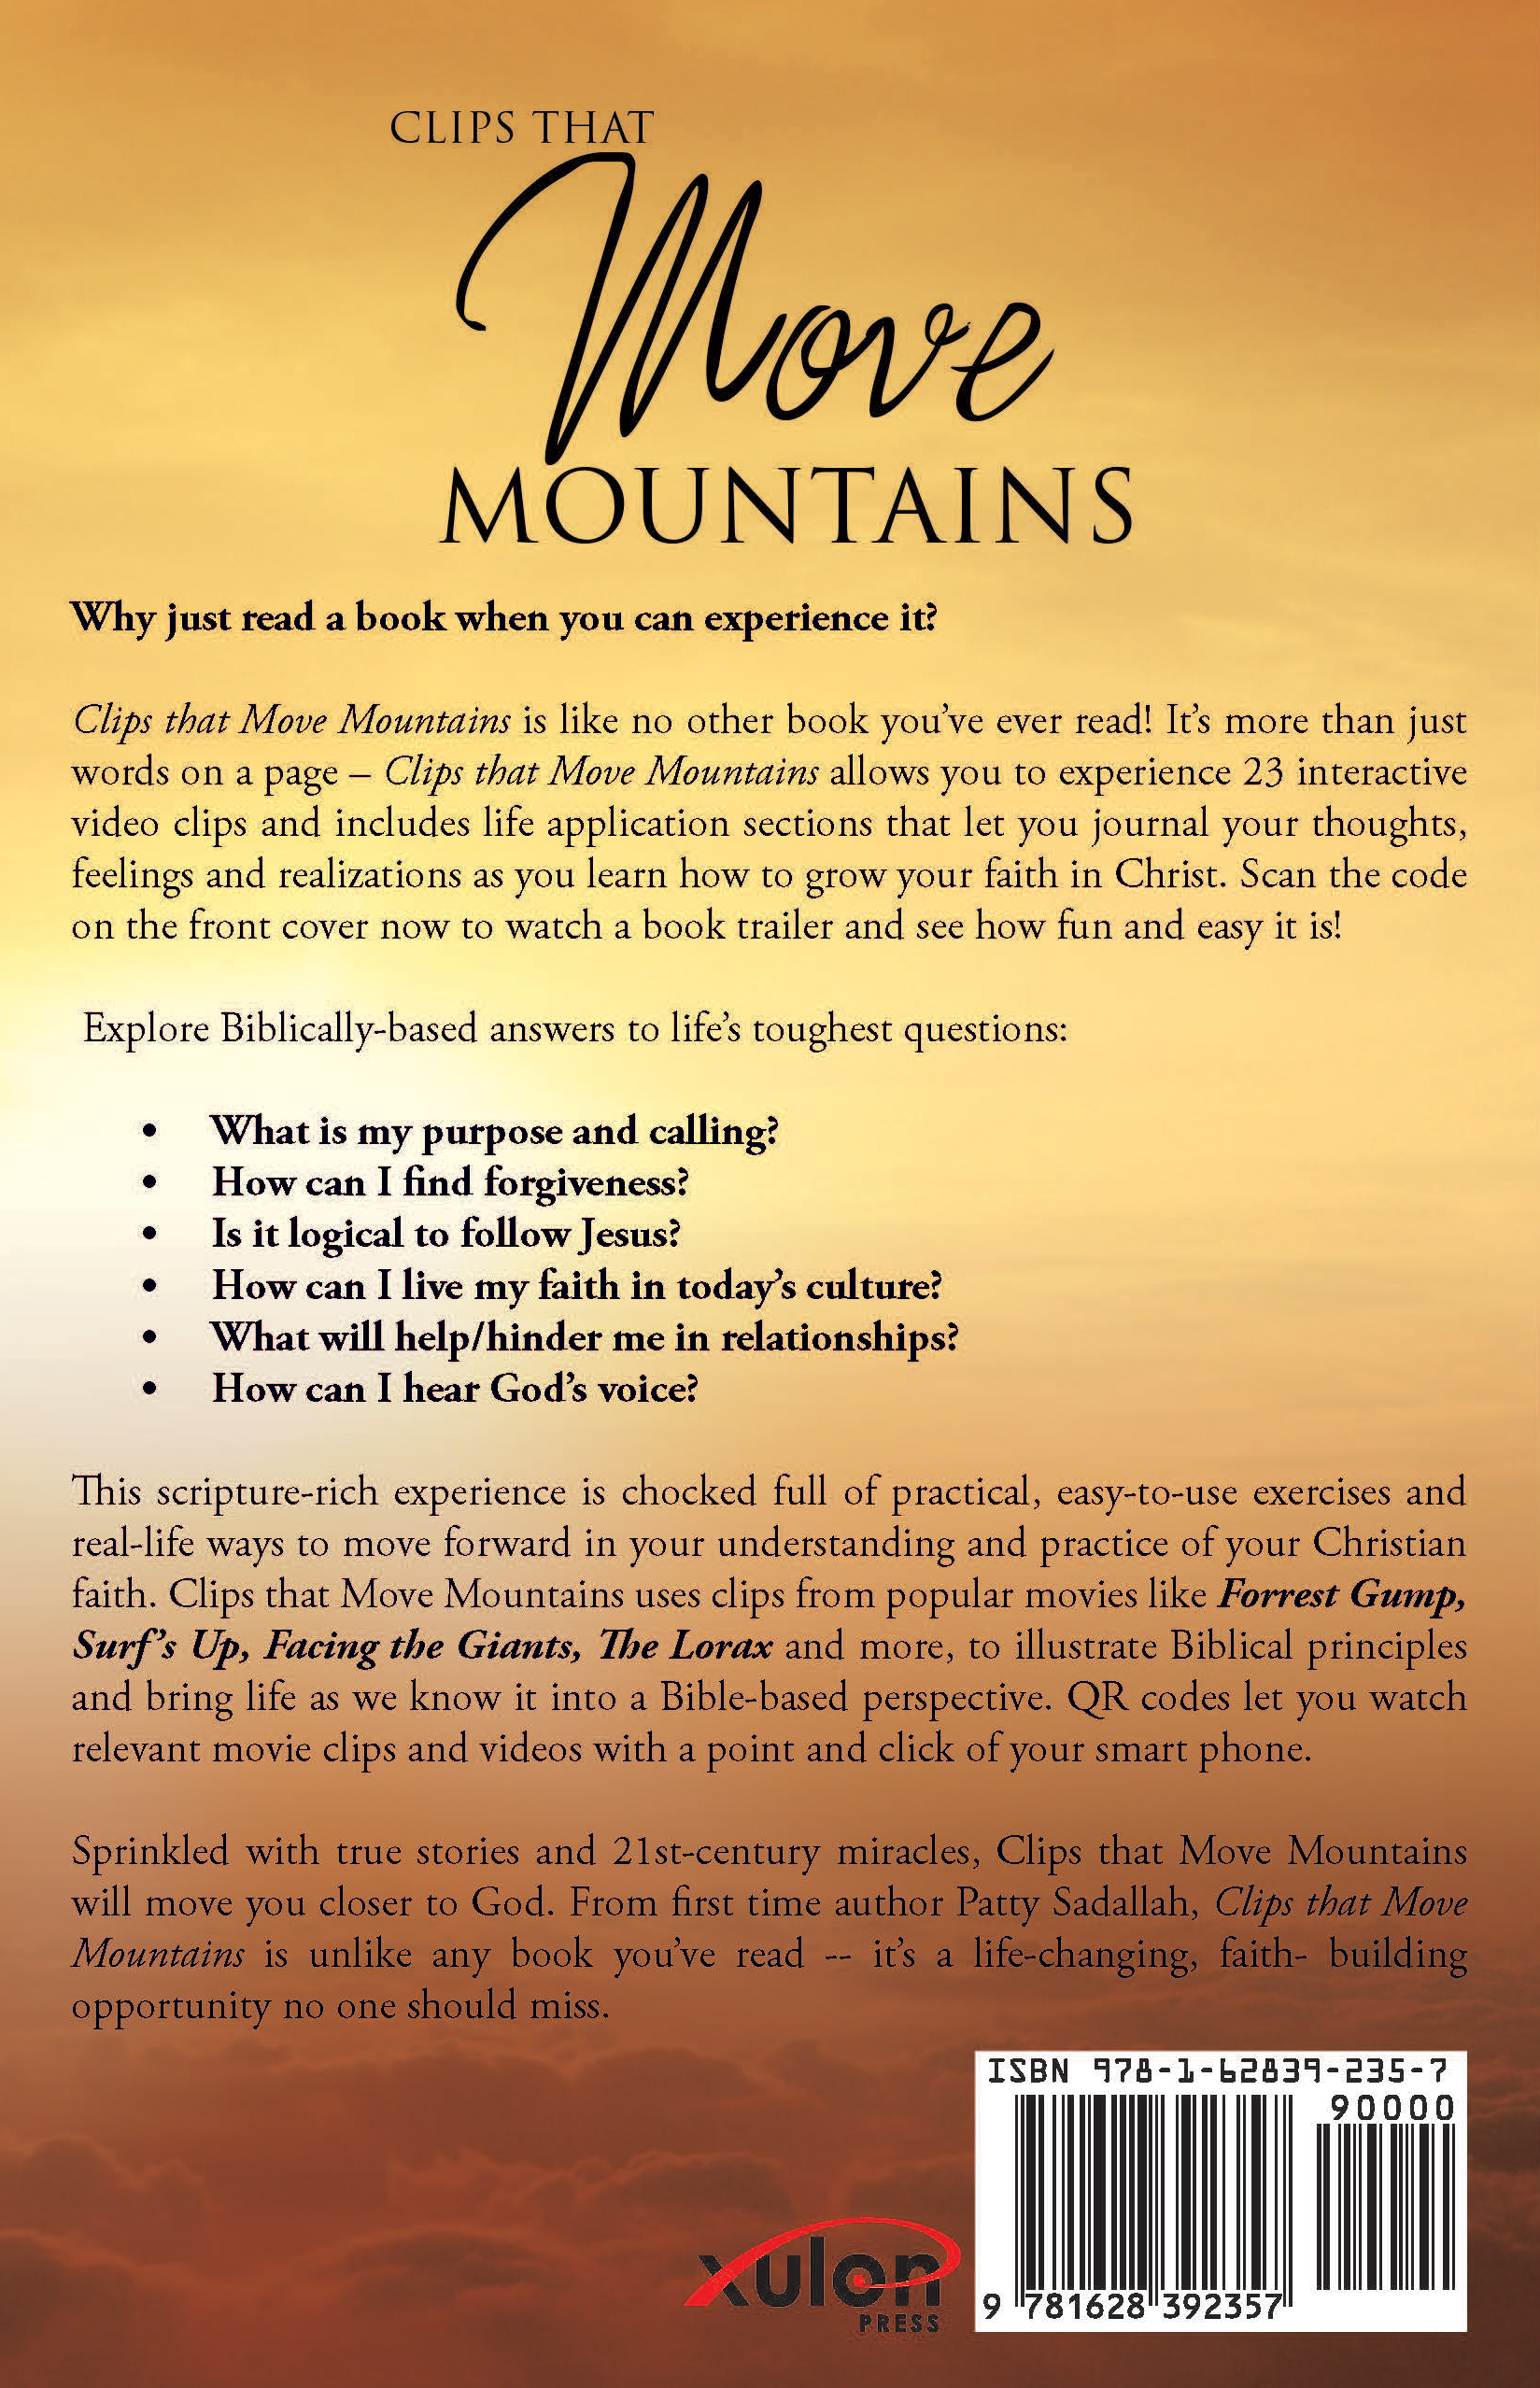 Clips That Move Mountains Back Cover